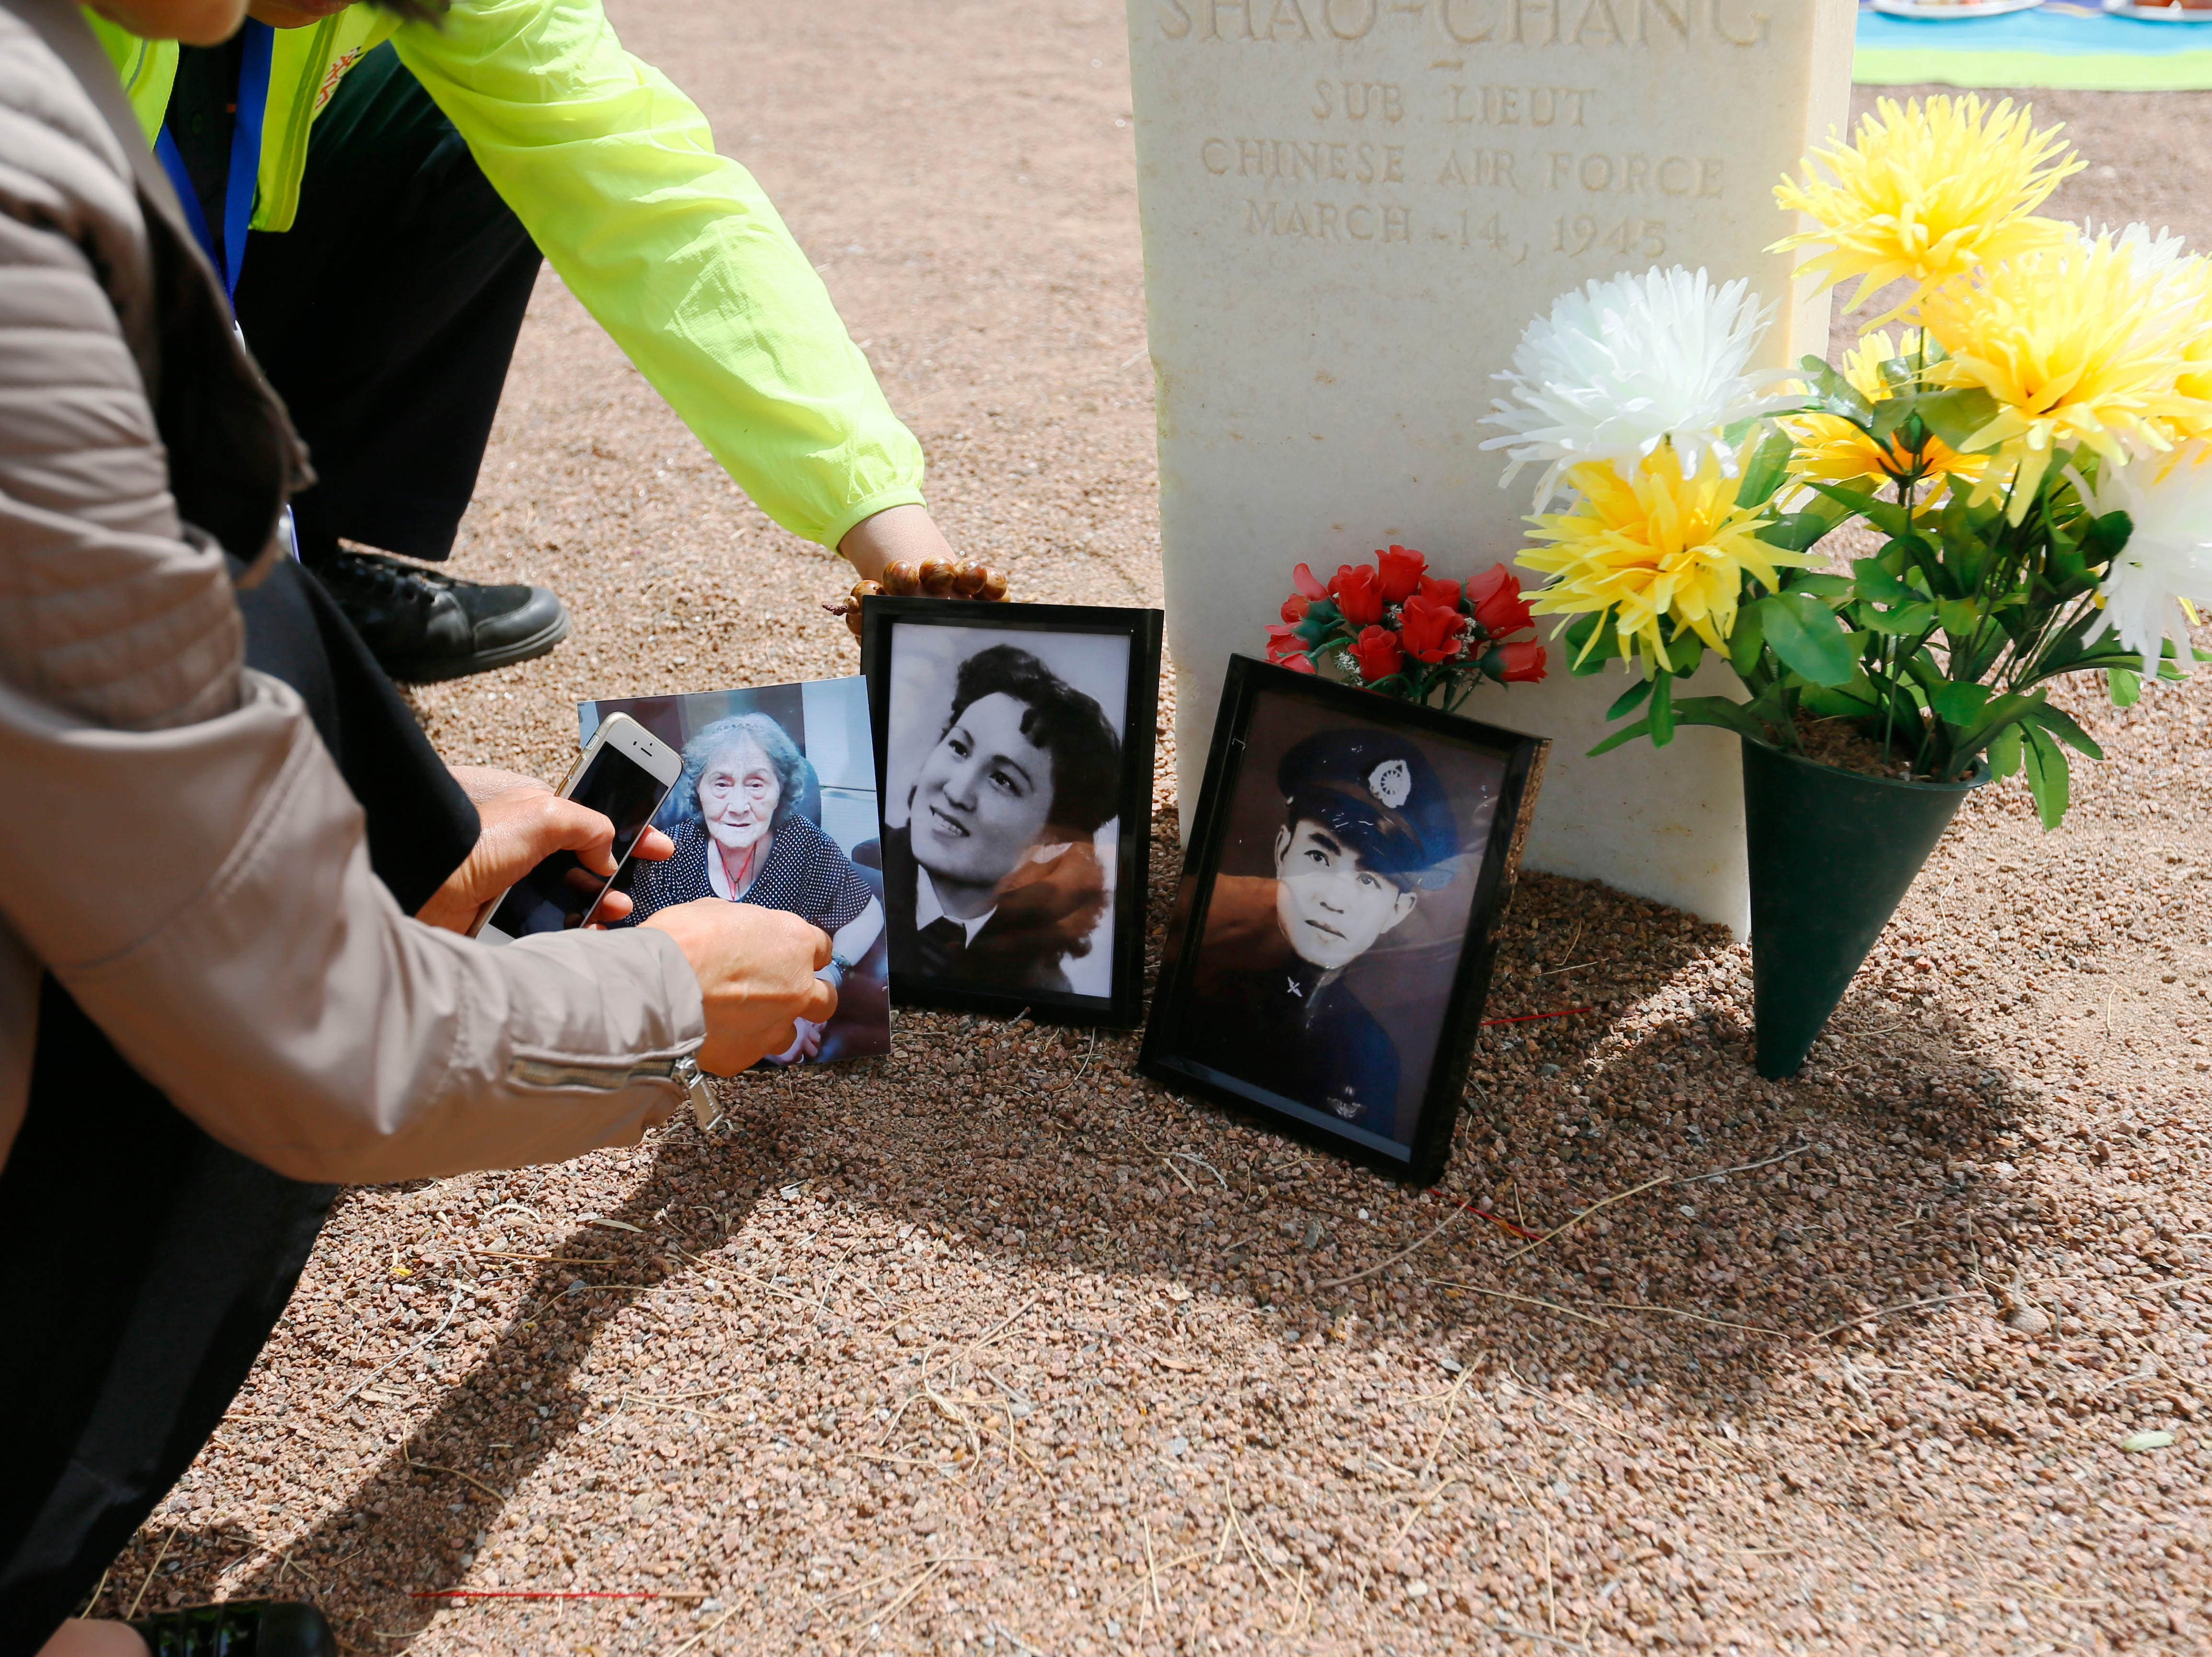 Feng Zhong shows photos of his great uncle Van Shao-Chang and his mother next to Van Shao-Chang's burial site Monday, May 13, at Fort Bliss National Cemetery. The Hunan LongYue Peace Charity Development Center brought family members to El Paso to pay a special remembrance to their relatives who are amongst the 52 Chinese pilots who died in the U.S. during flight training in World War II.